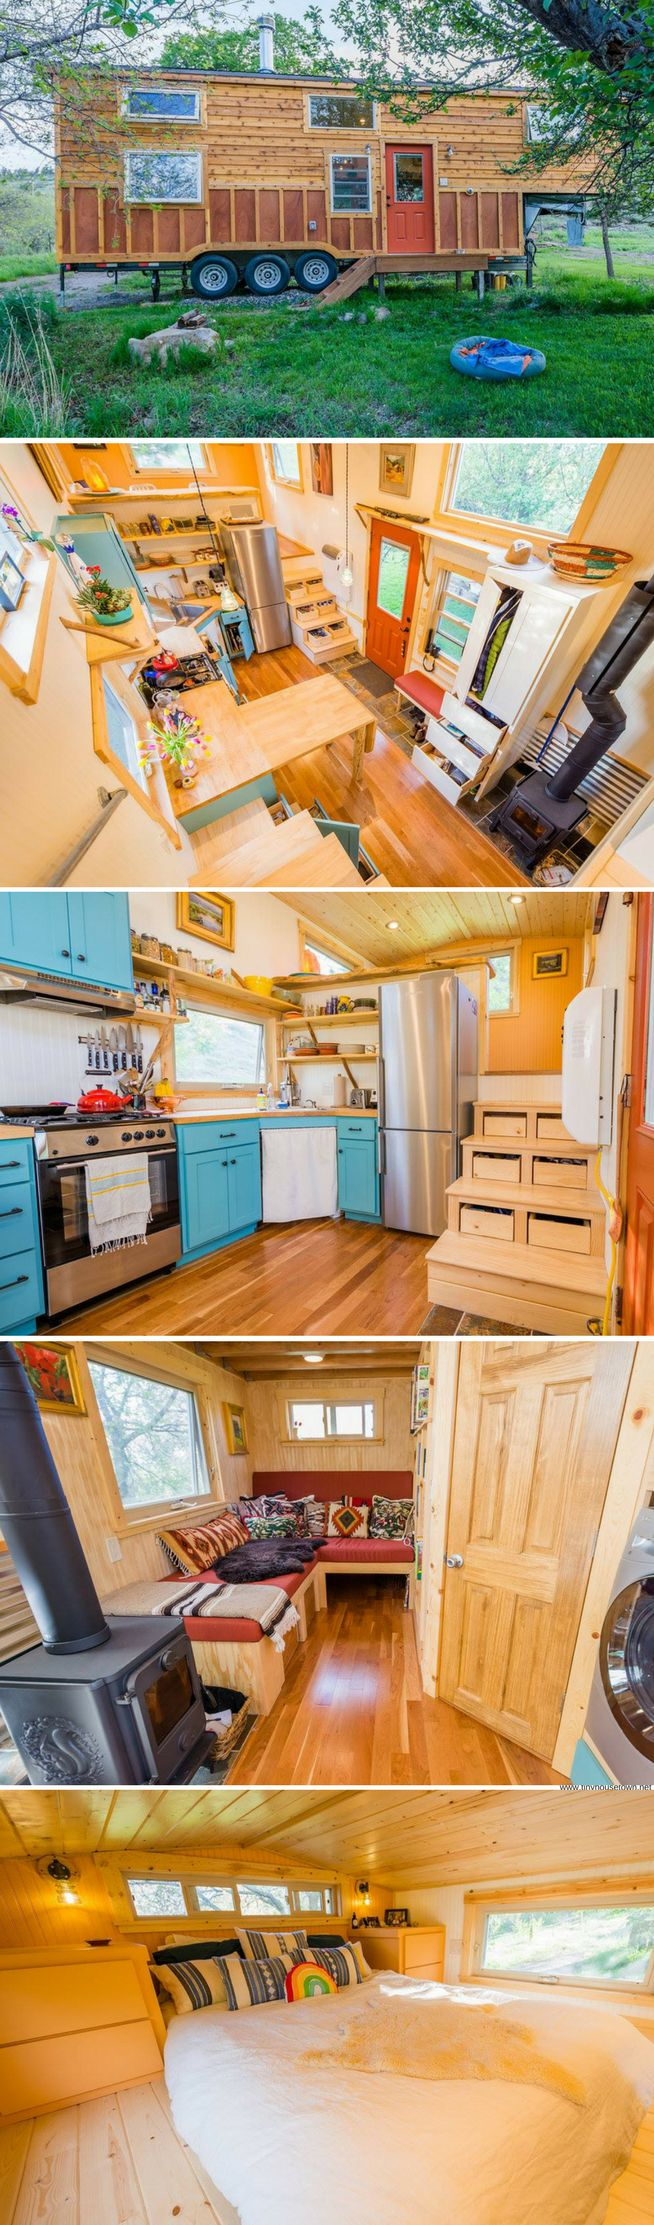 A custom tiny house from Mitchcraft Tiny Homes